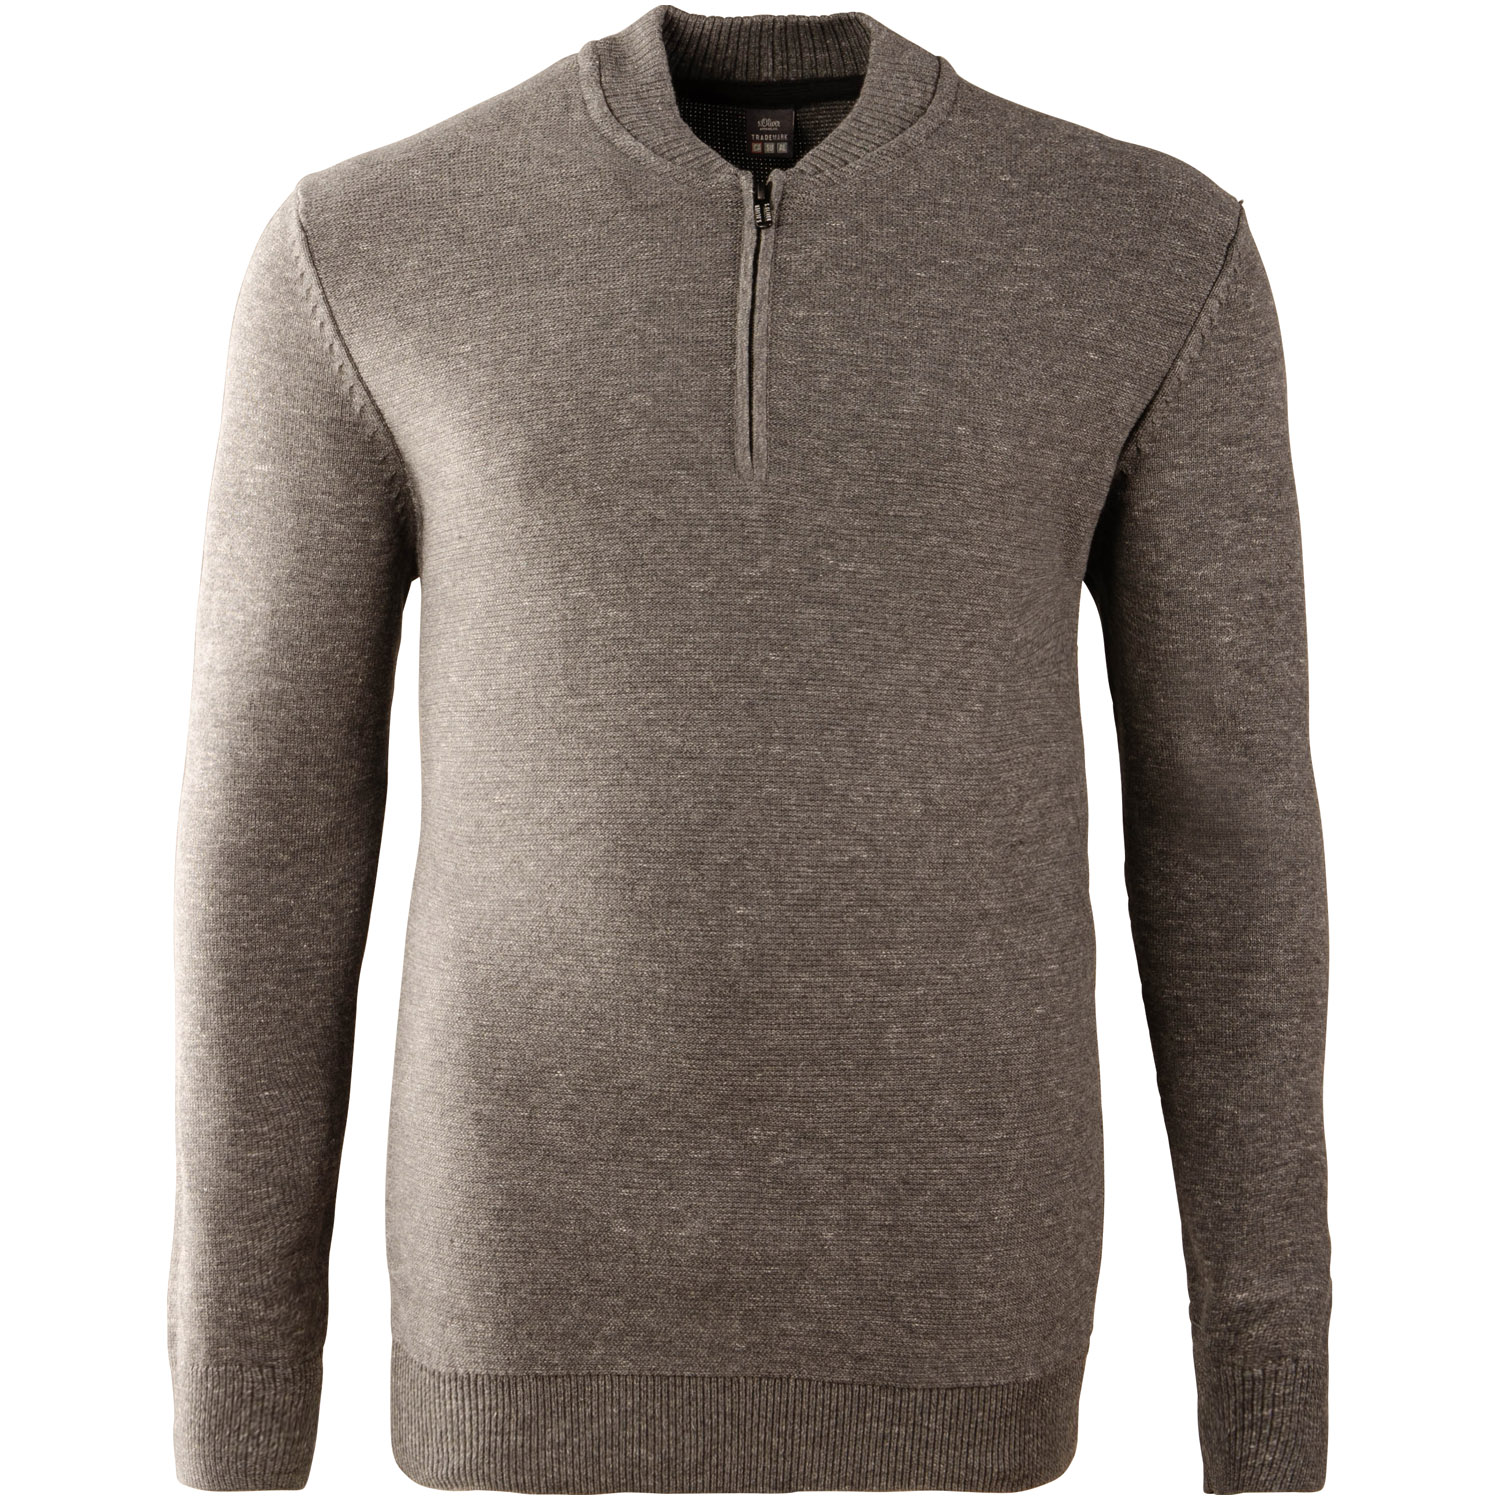 info for 2921c b4a5c S.OLIVER Pullover grau-meliert